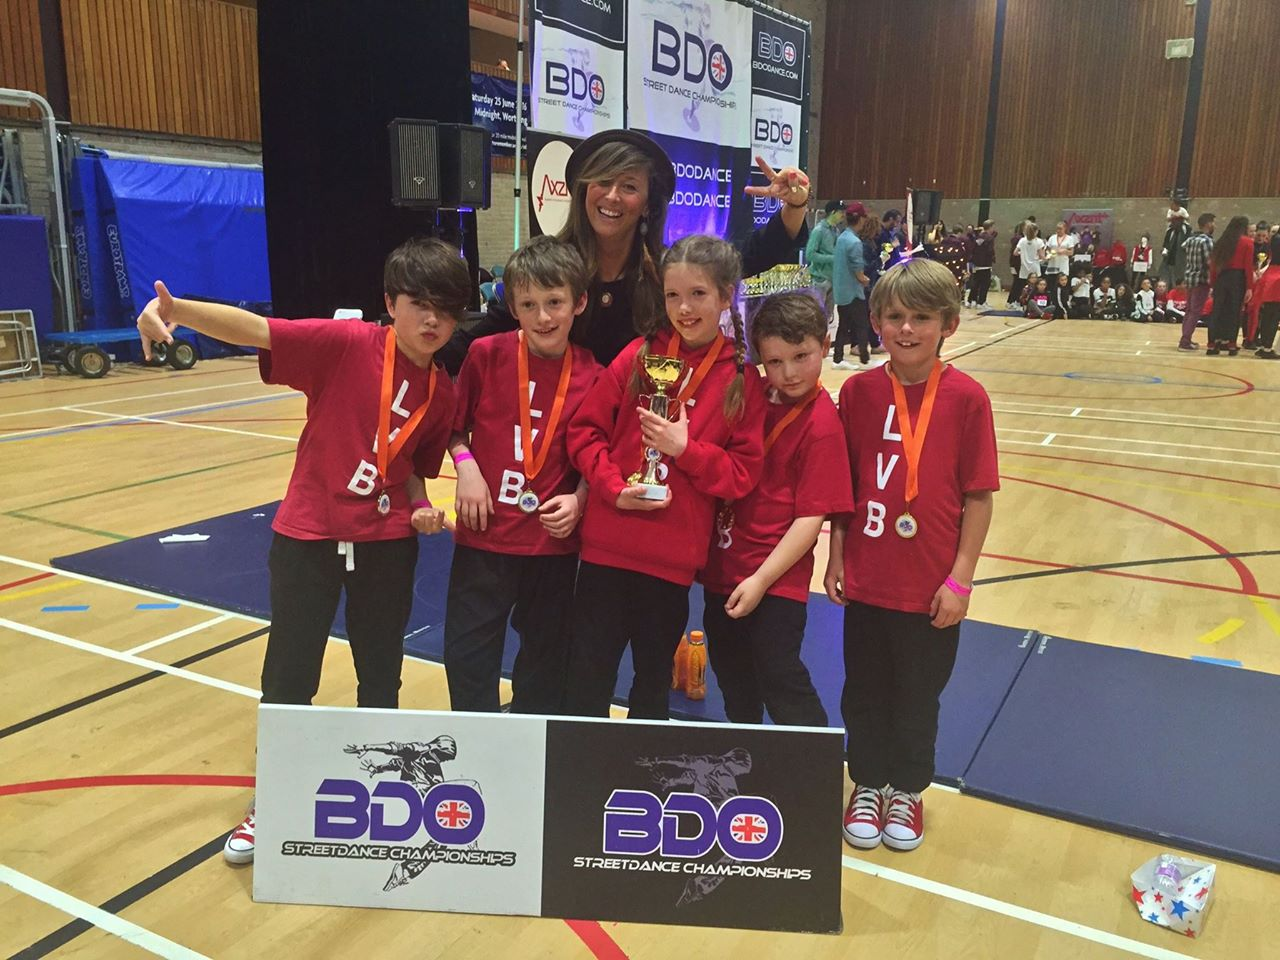 Just after they won their cup and medals!